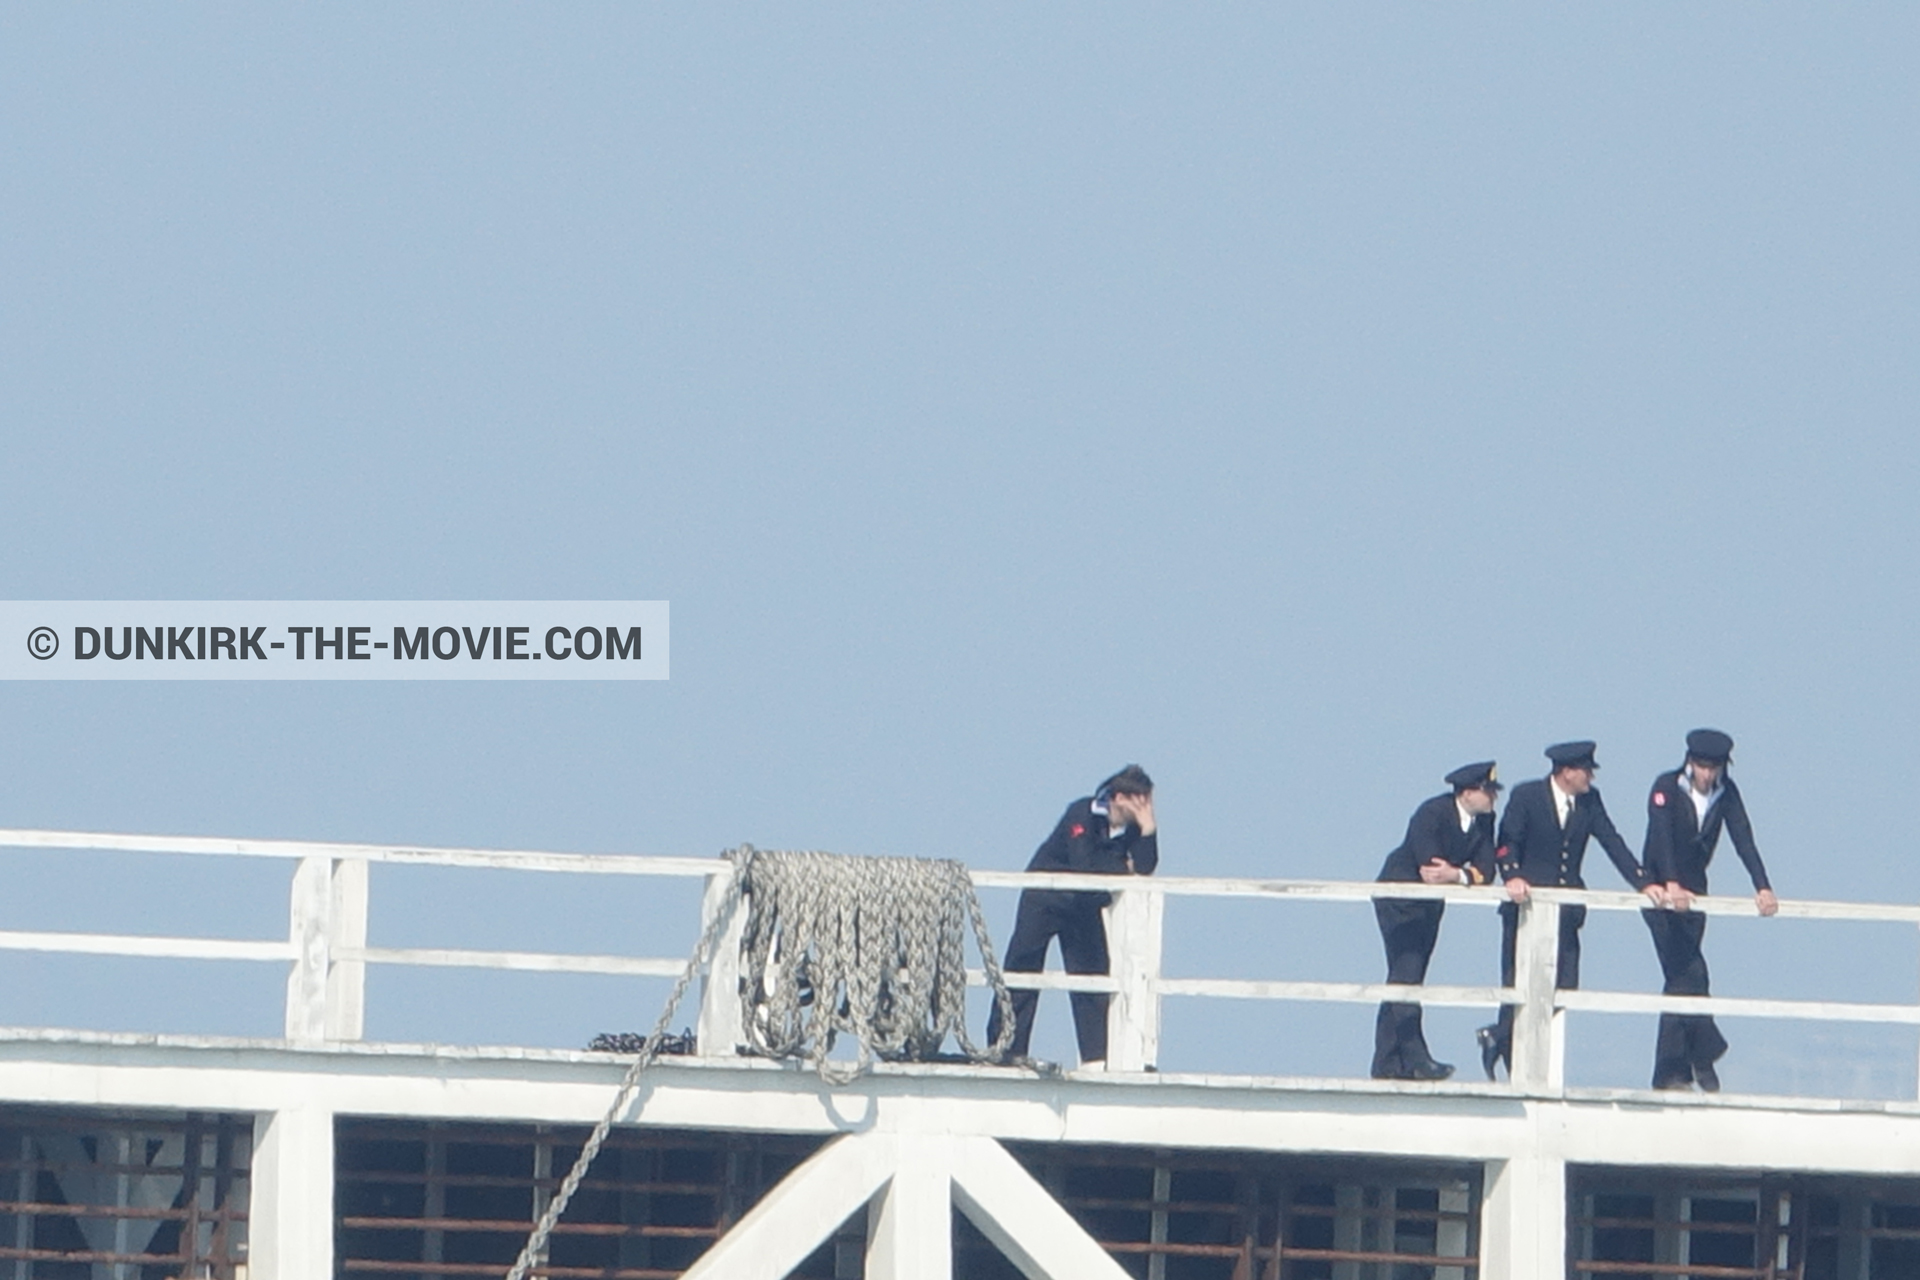 Picture with blue sky, supernumeraries, EST pier,  from behind the scene of the Dunkirk movie by Nolan